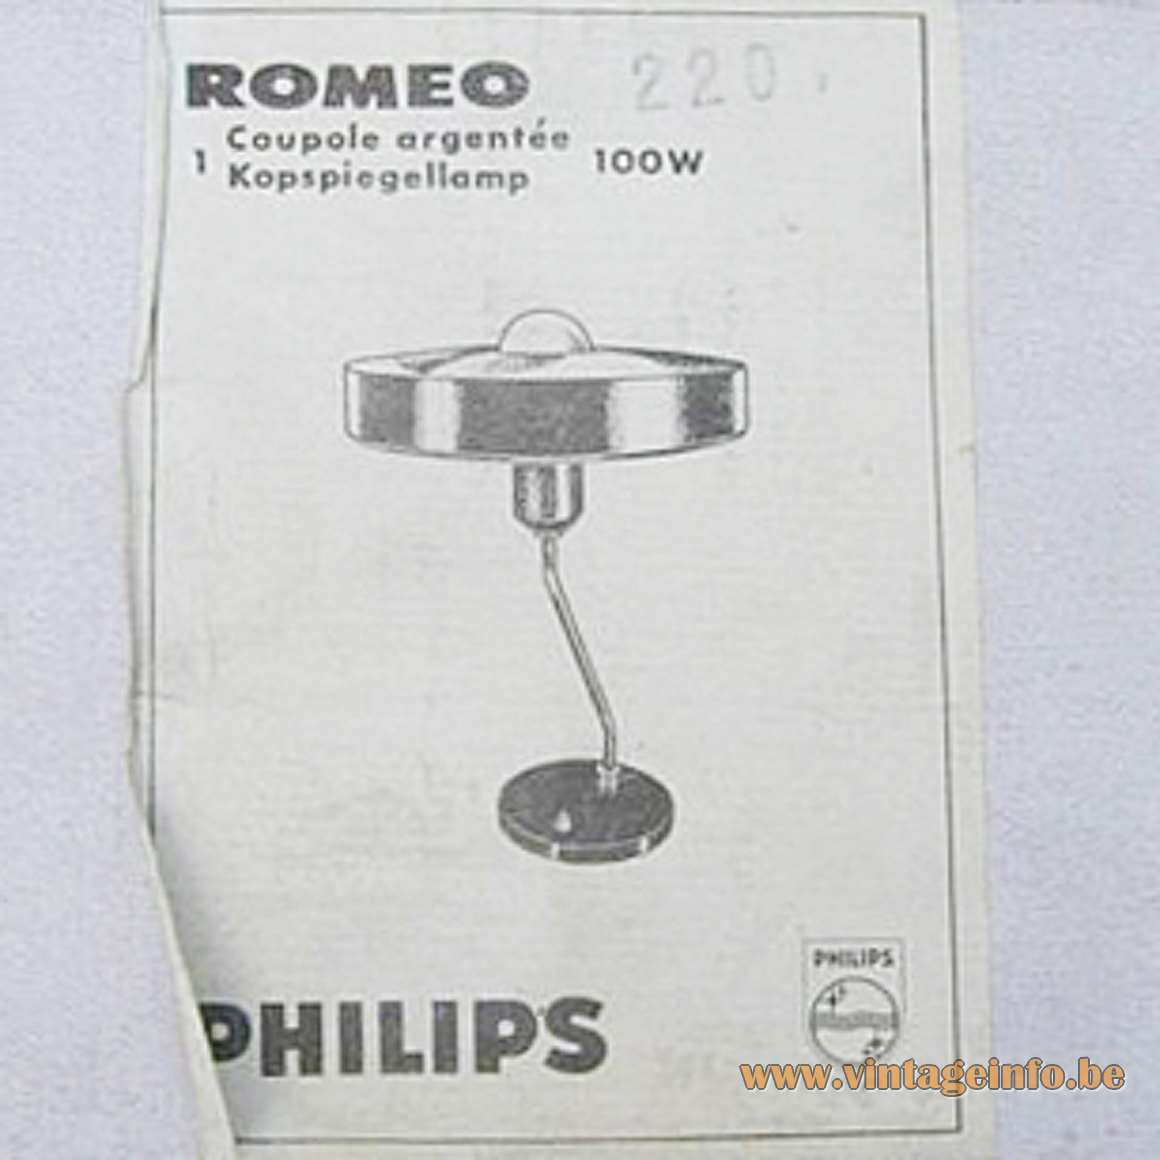 Philips Romeo Desk Lamp - Stickers/labels on the Box